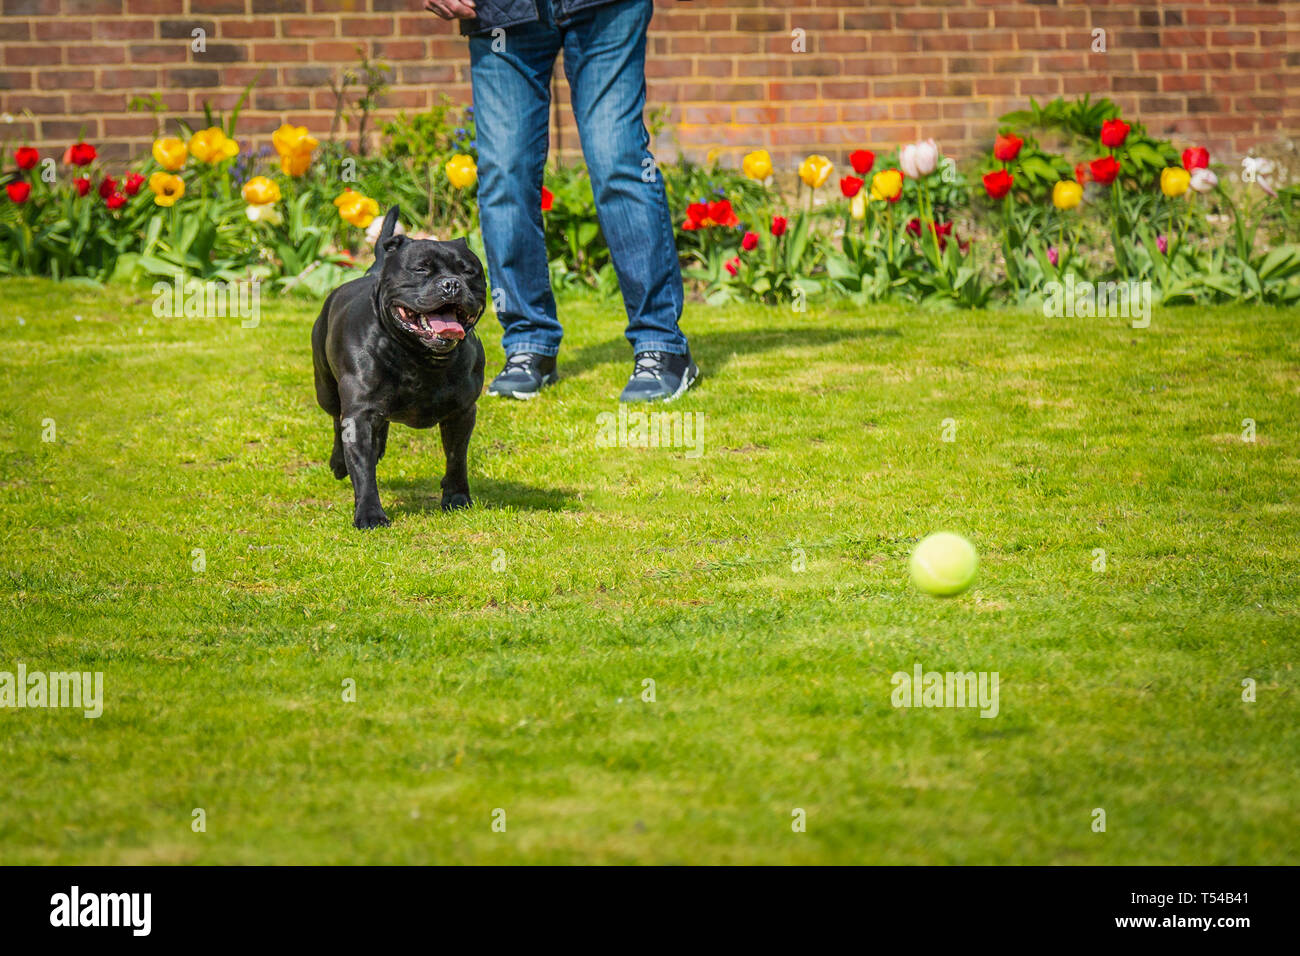 Black Staffordshire bull terrier dog running chasing after a tennis ball thrown by a man, on grass in a garden or back yard with tulips and a brick wa - Stock Image